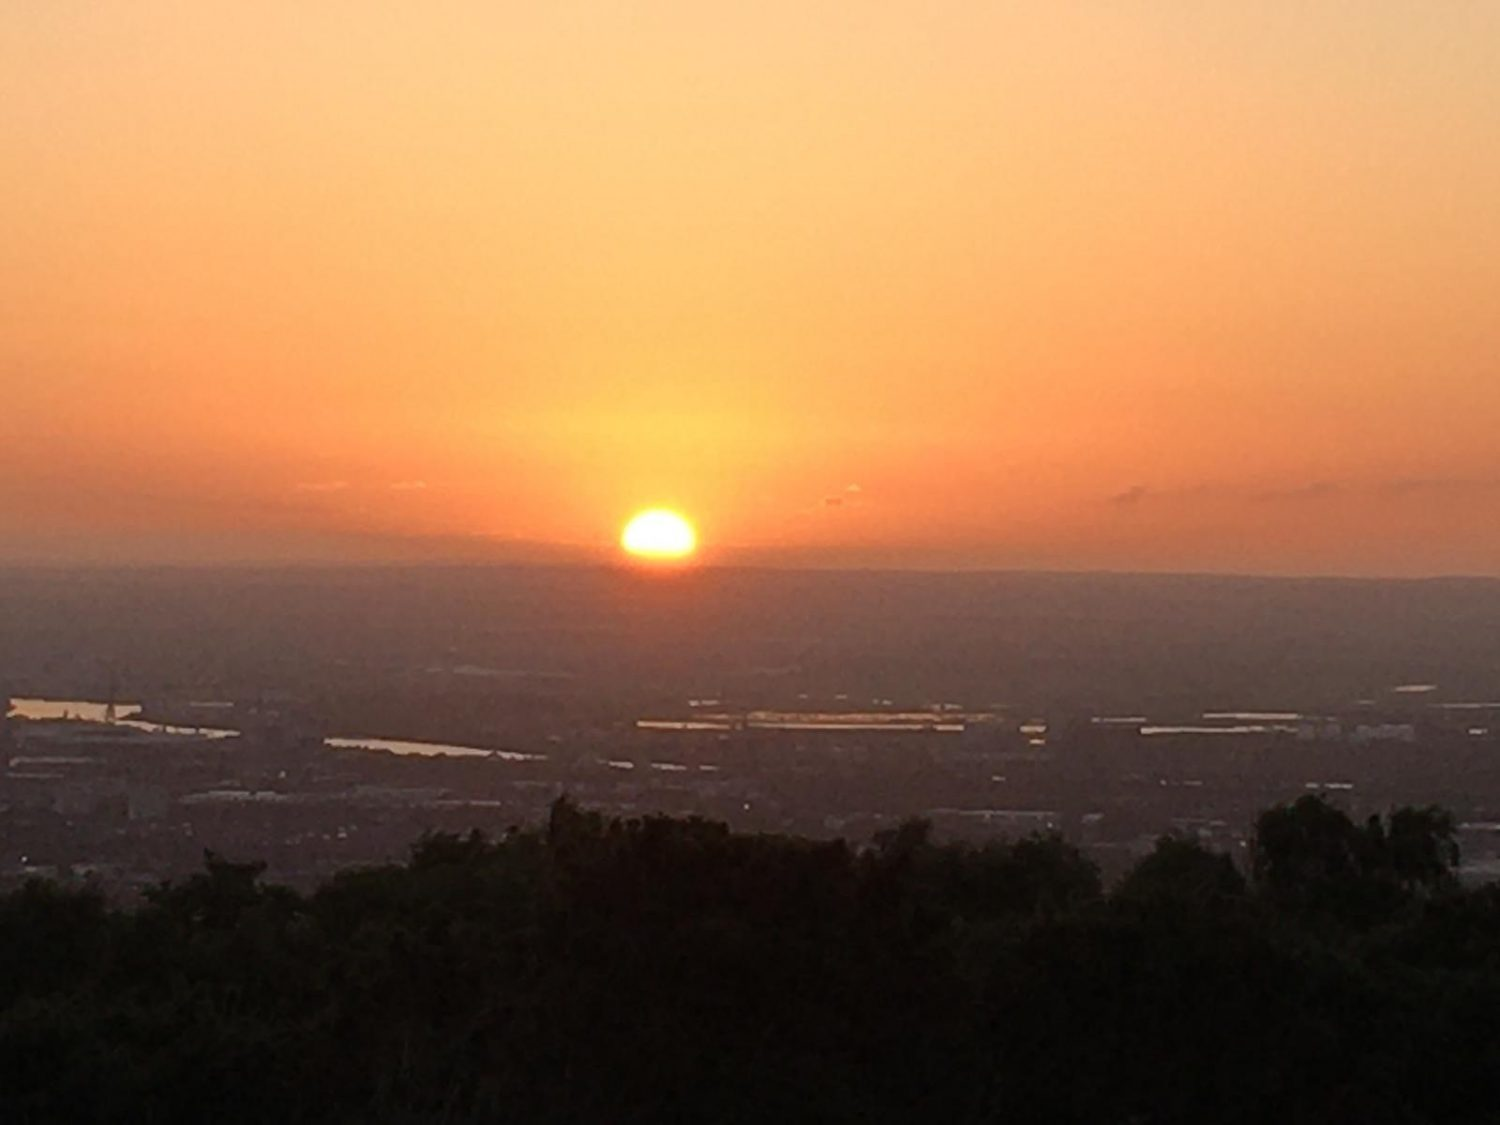 Sun setting over a built up landscape with a large hill i n the distance. The sky is pink, red, and yellow